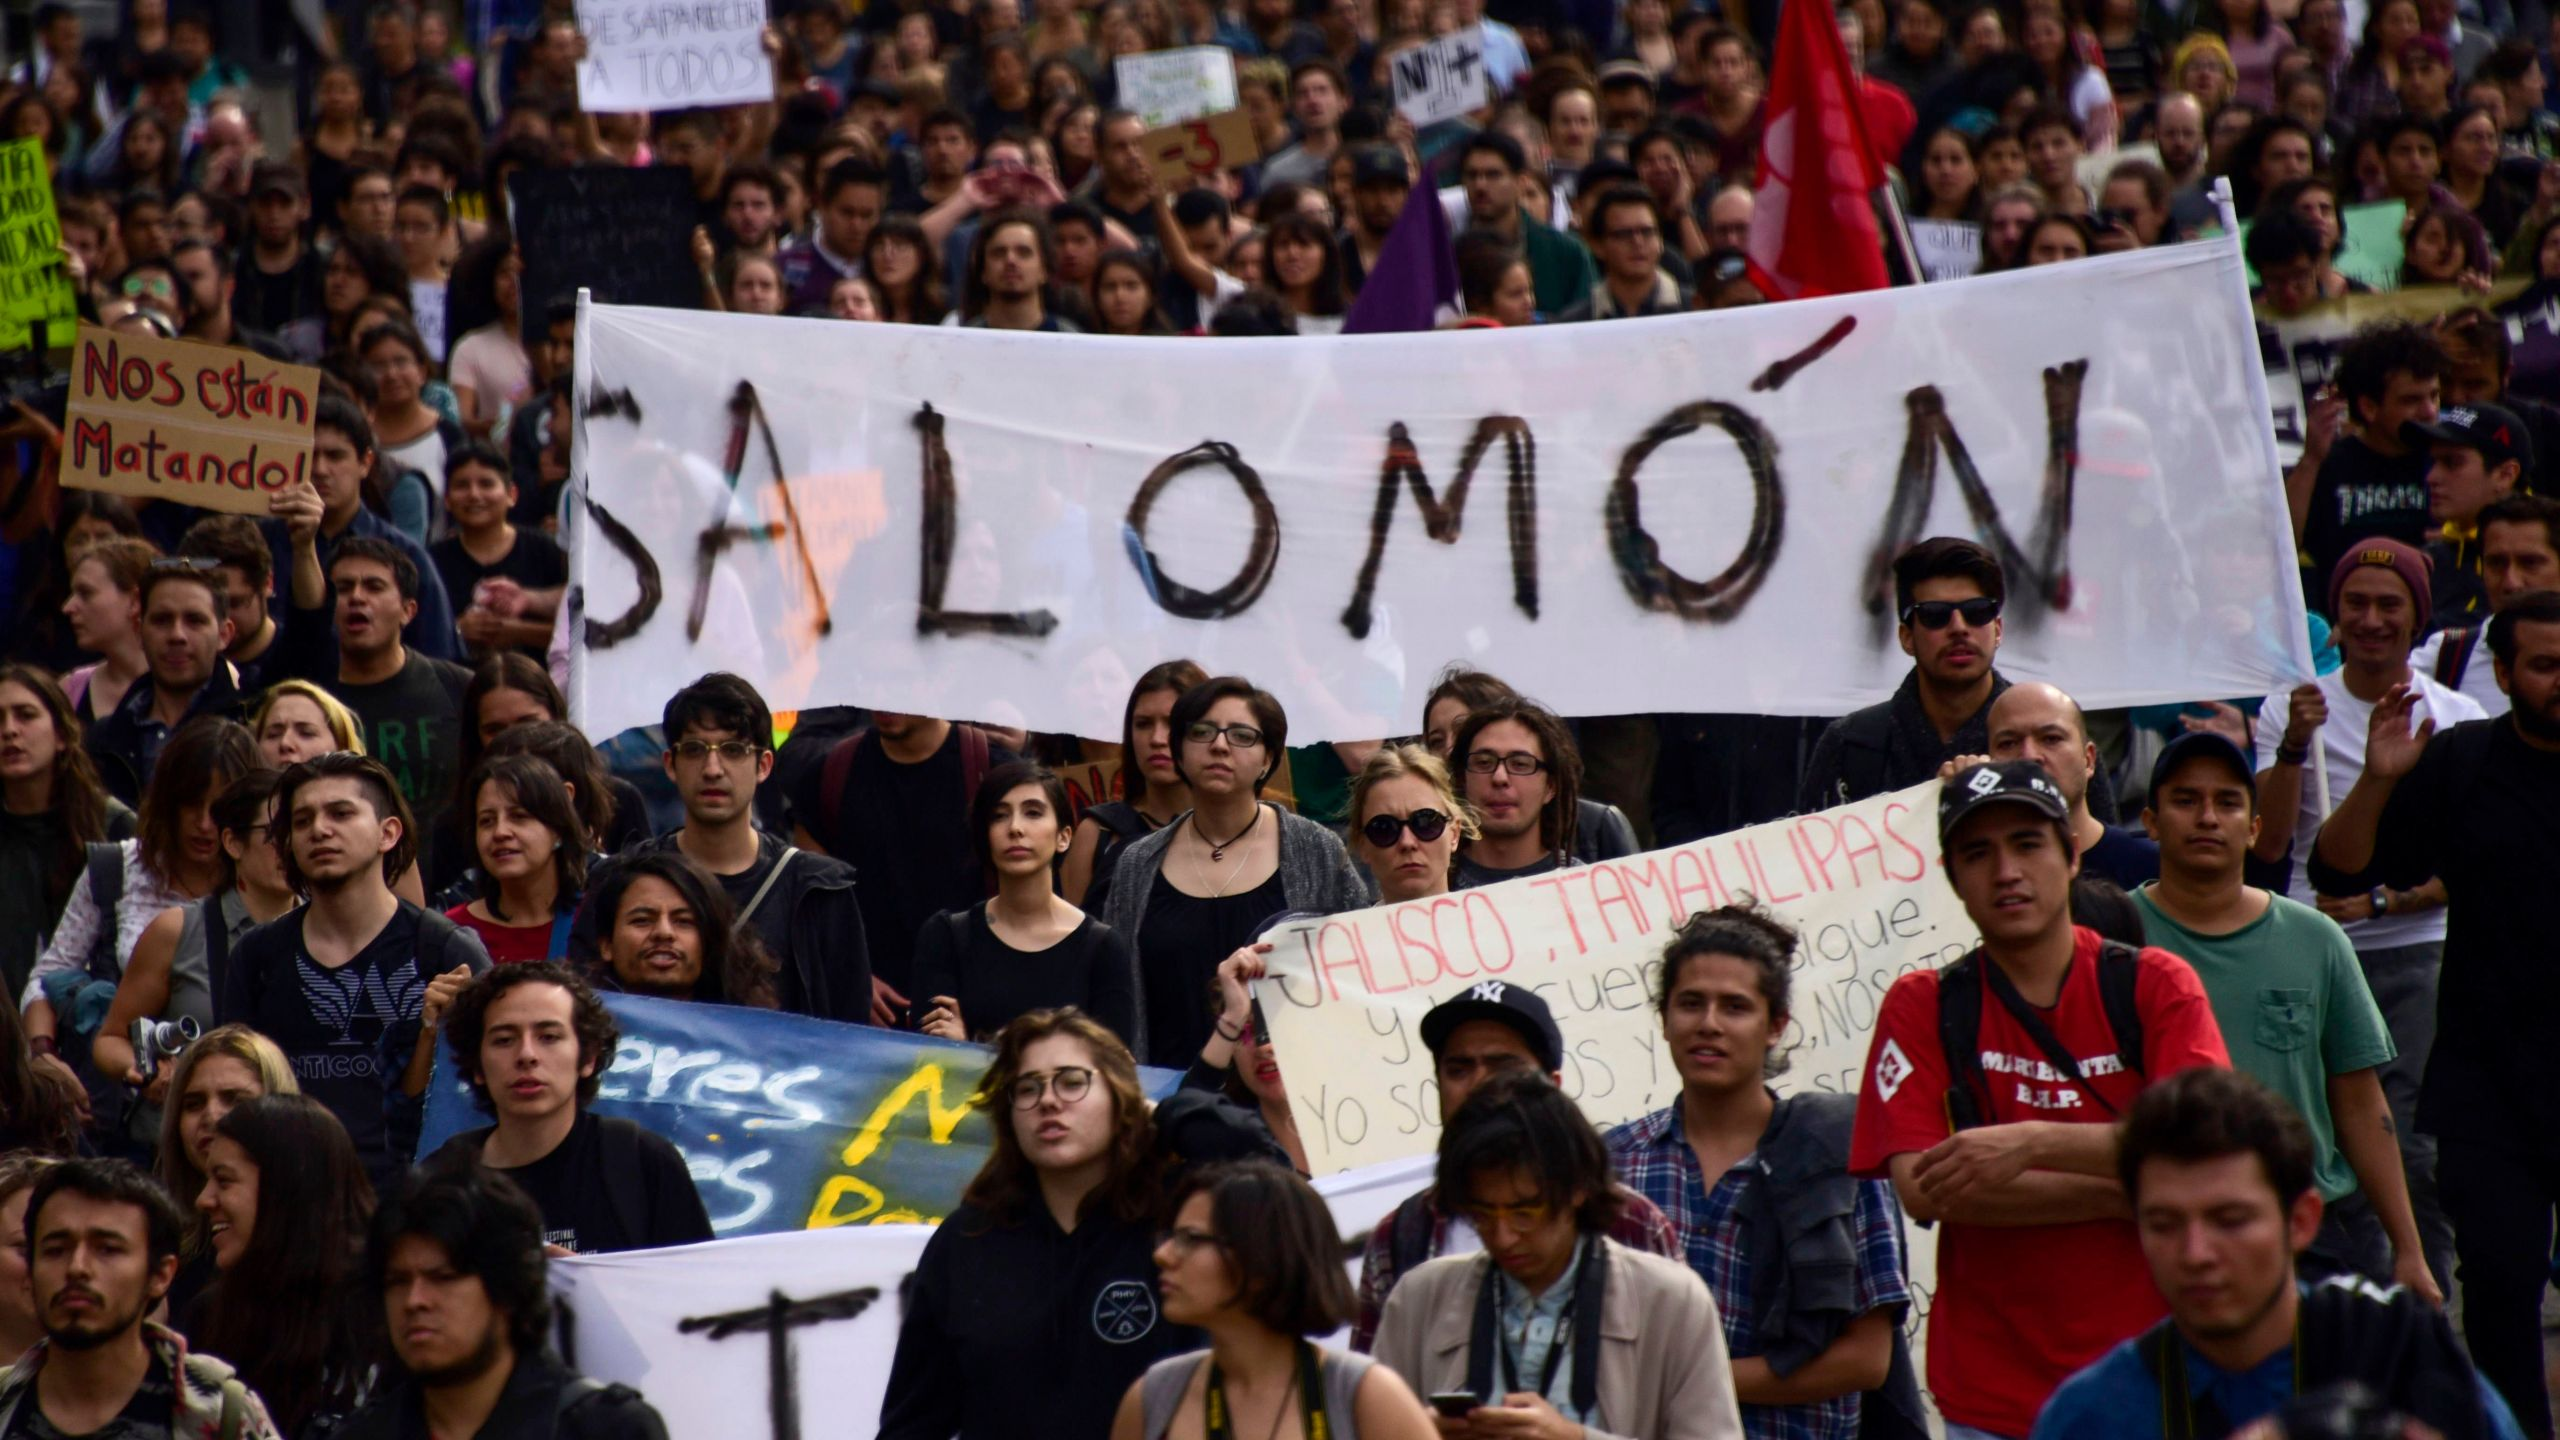 Mexican students take part in a protest against the violence in Mexico and the murder of three students from the University of Audiovisual Media of Guadalajara, in Mexico City, on April 24, 2018. (Credit: Pedro Pardo / AFP / Getty Images)